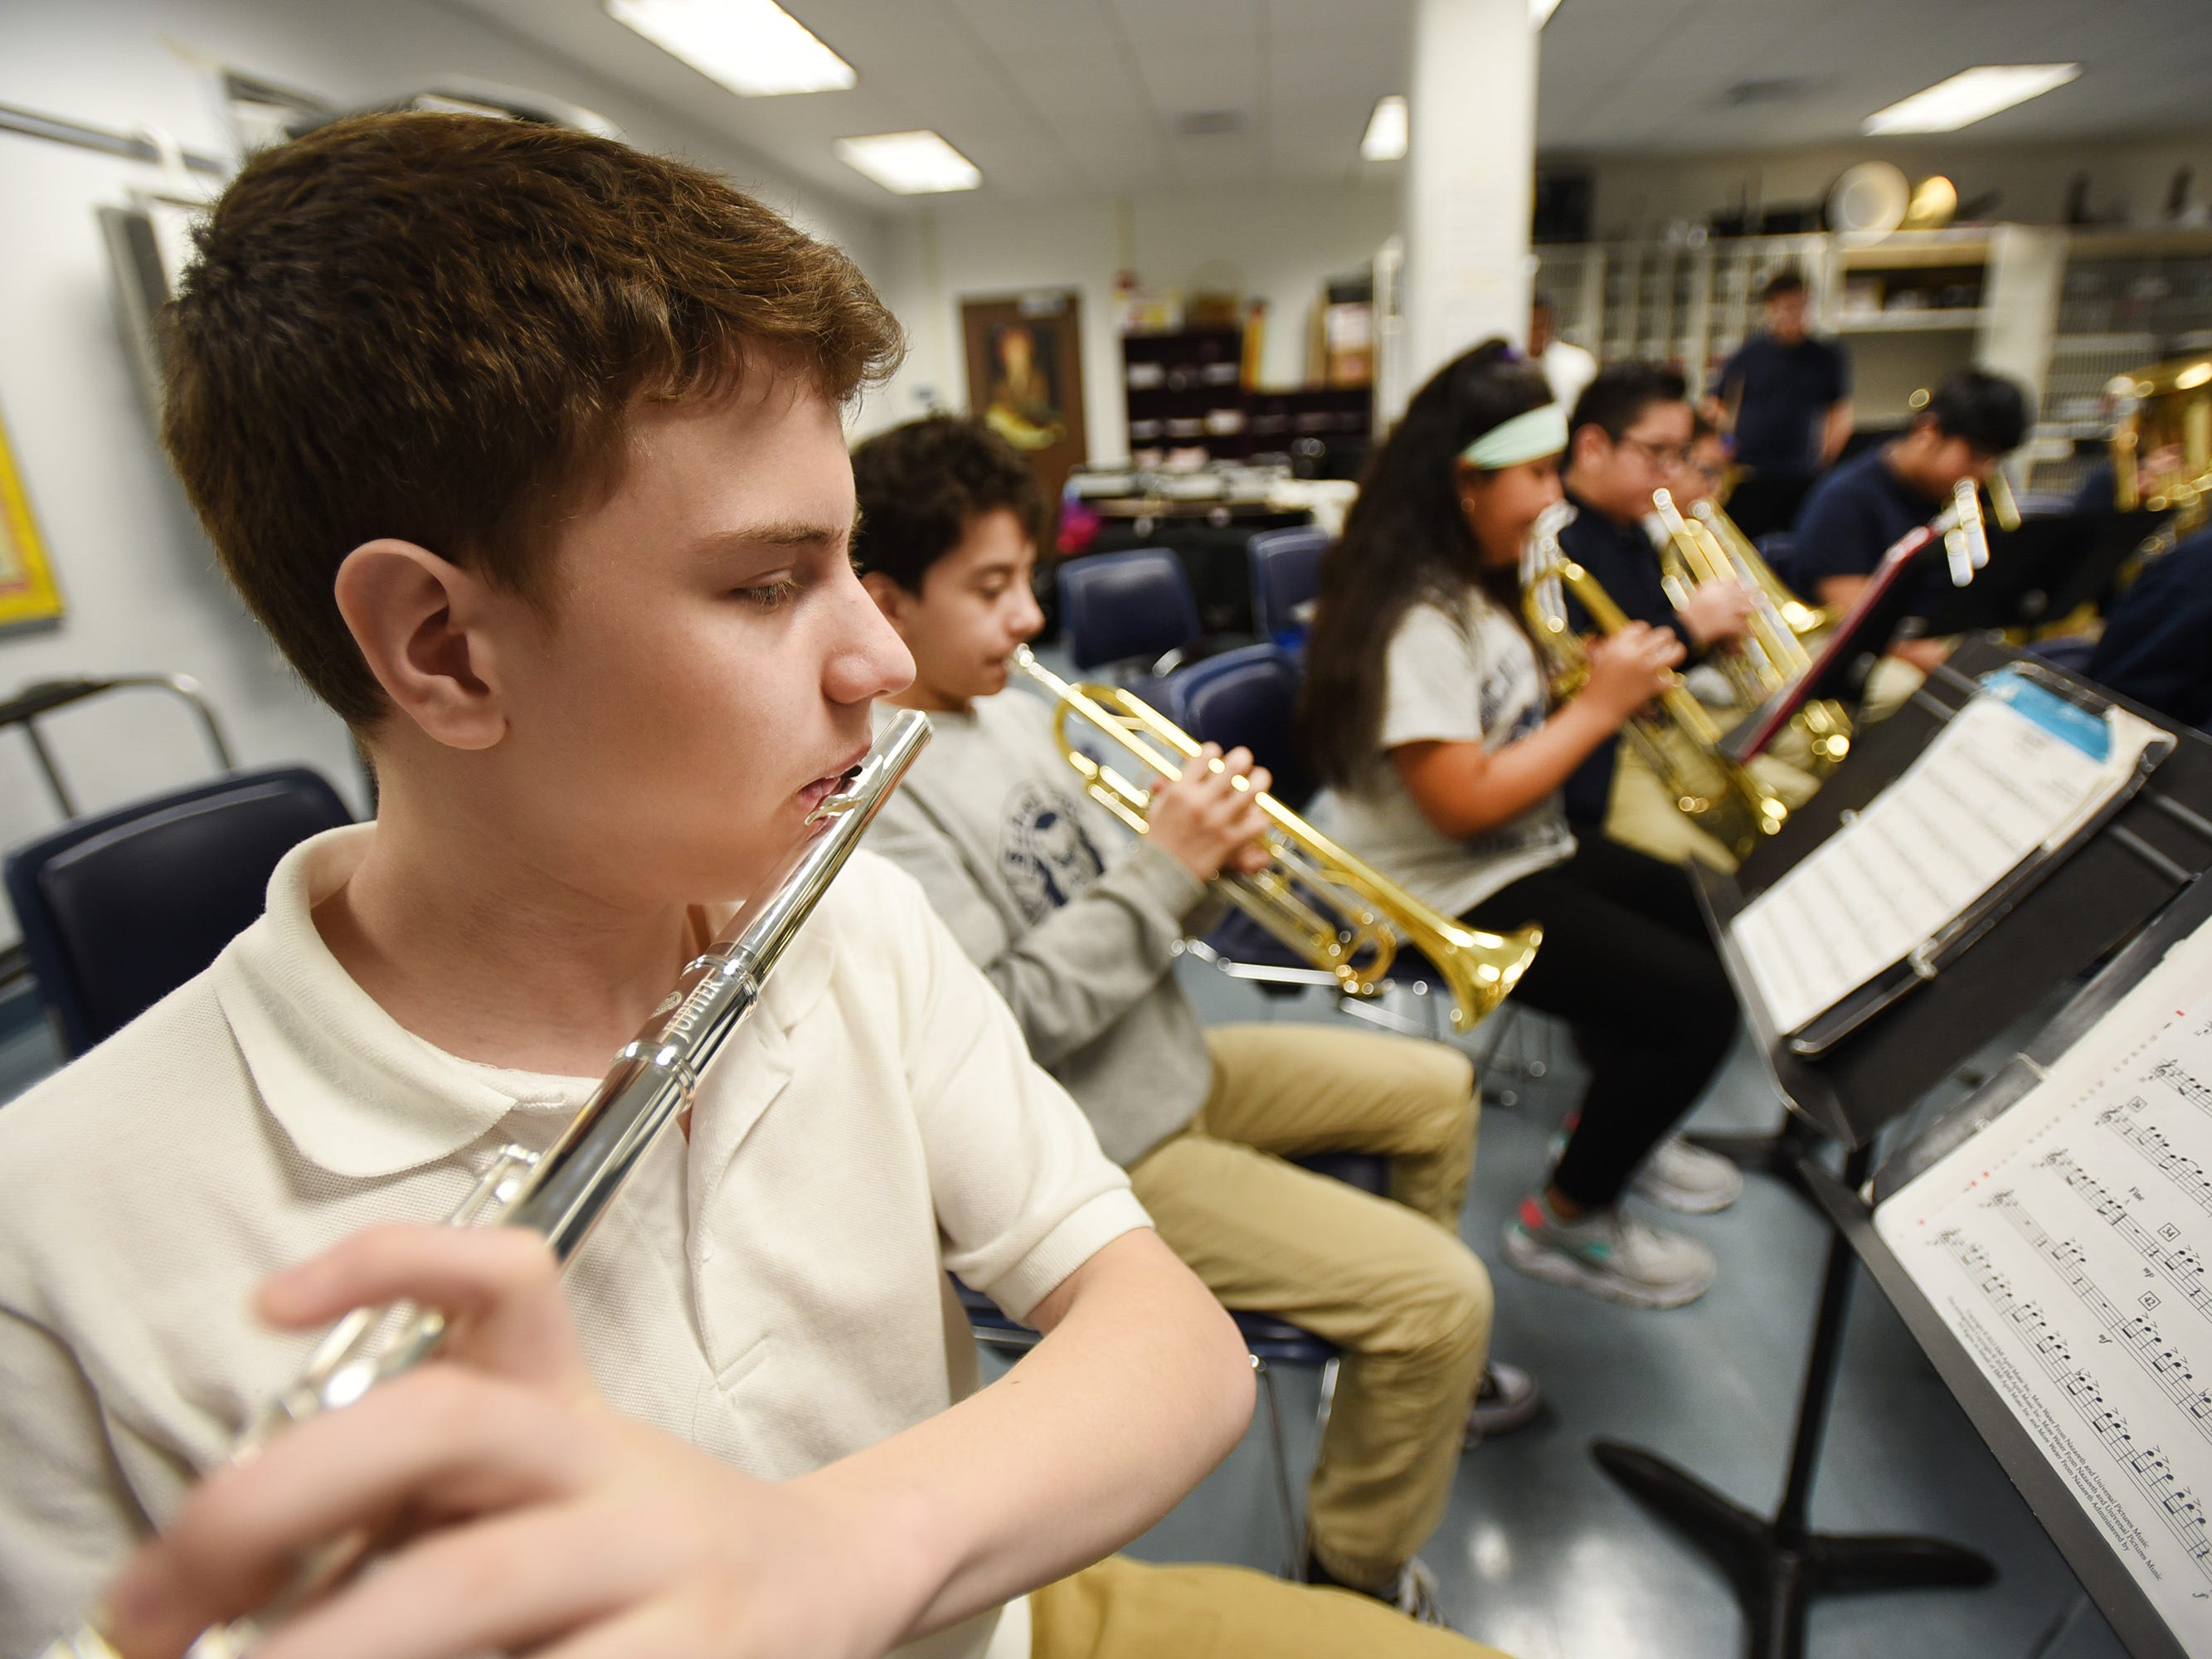 Seventh grader Esteban Henao plays his flute as he and his teammates practice led by the Band Director Nancy Horowitz during a music class at School #24 in Paterson on 01/09/19.